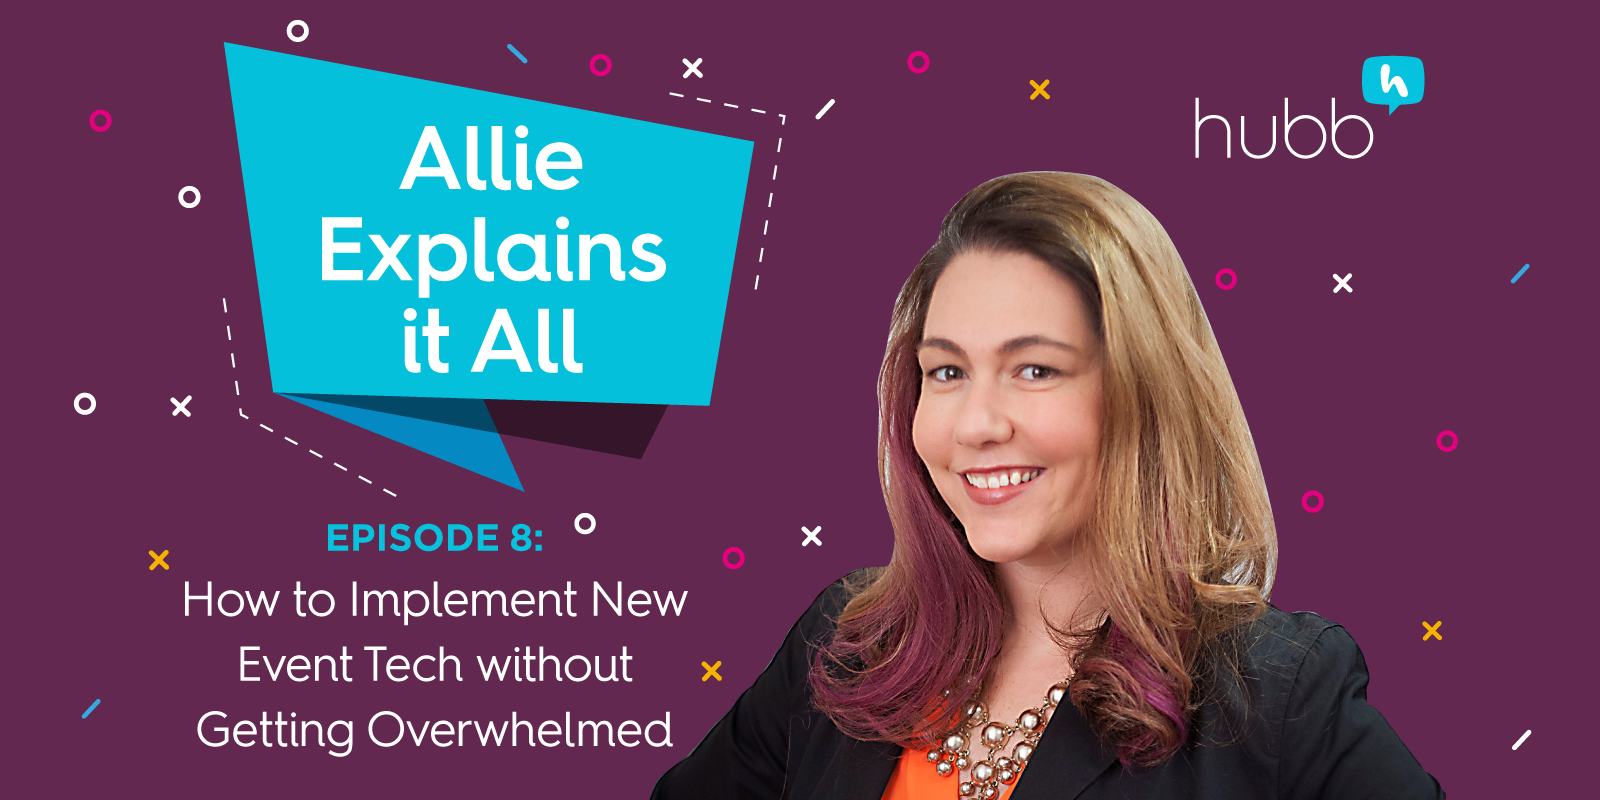 Allie Answers Episode 8 - Implement New Event Tech